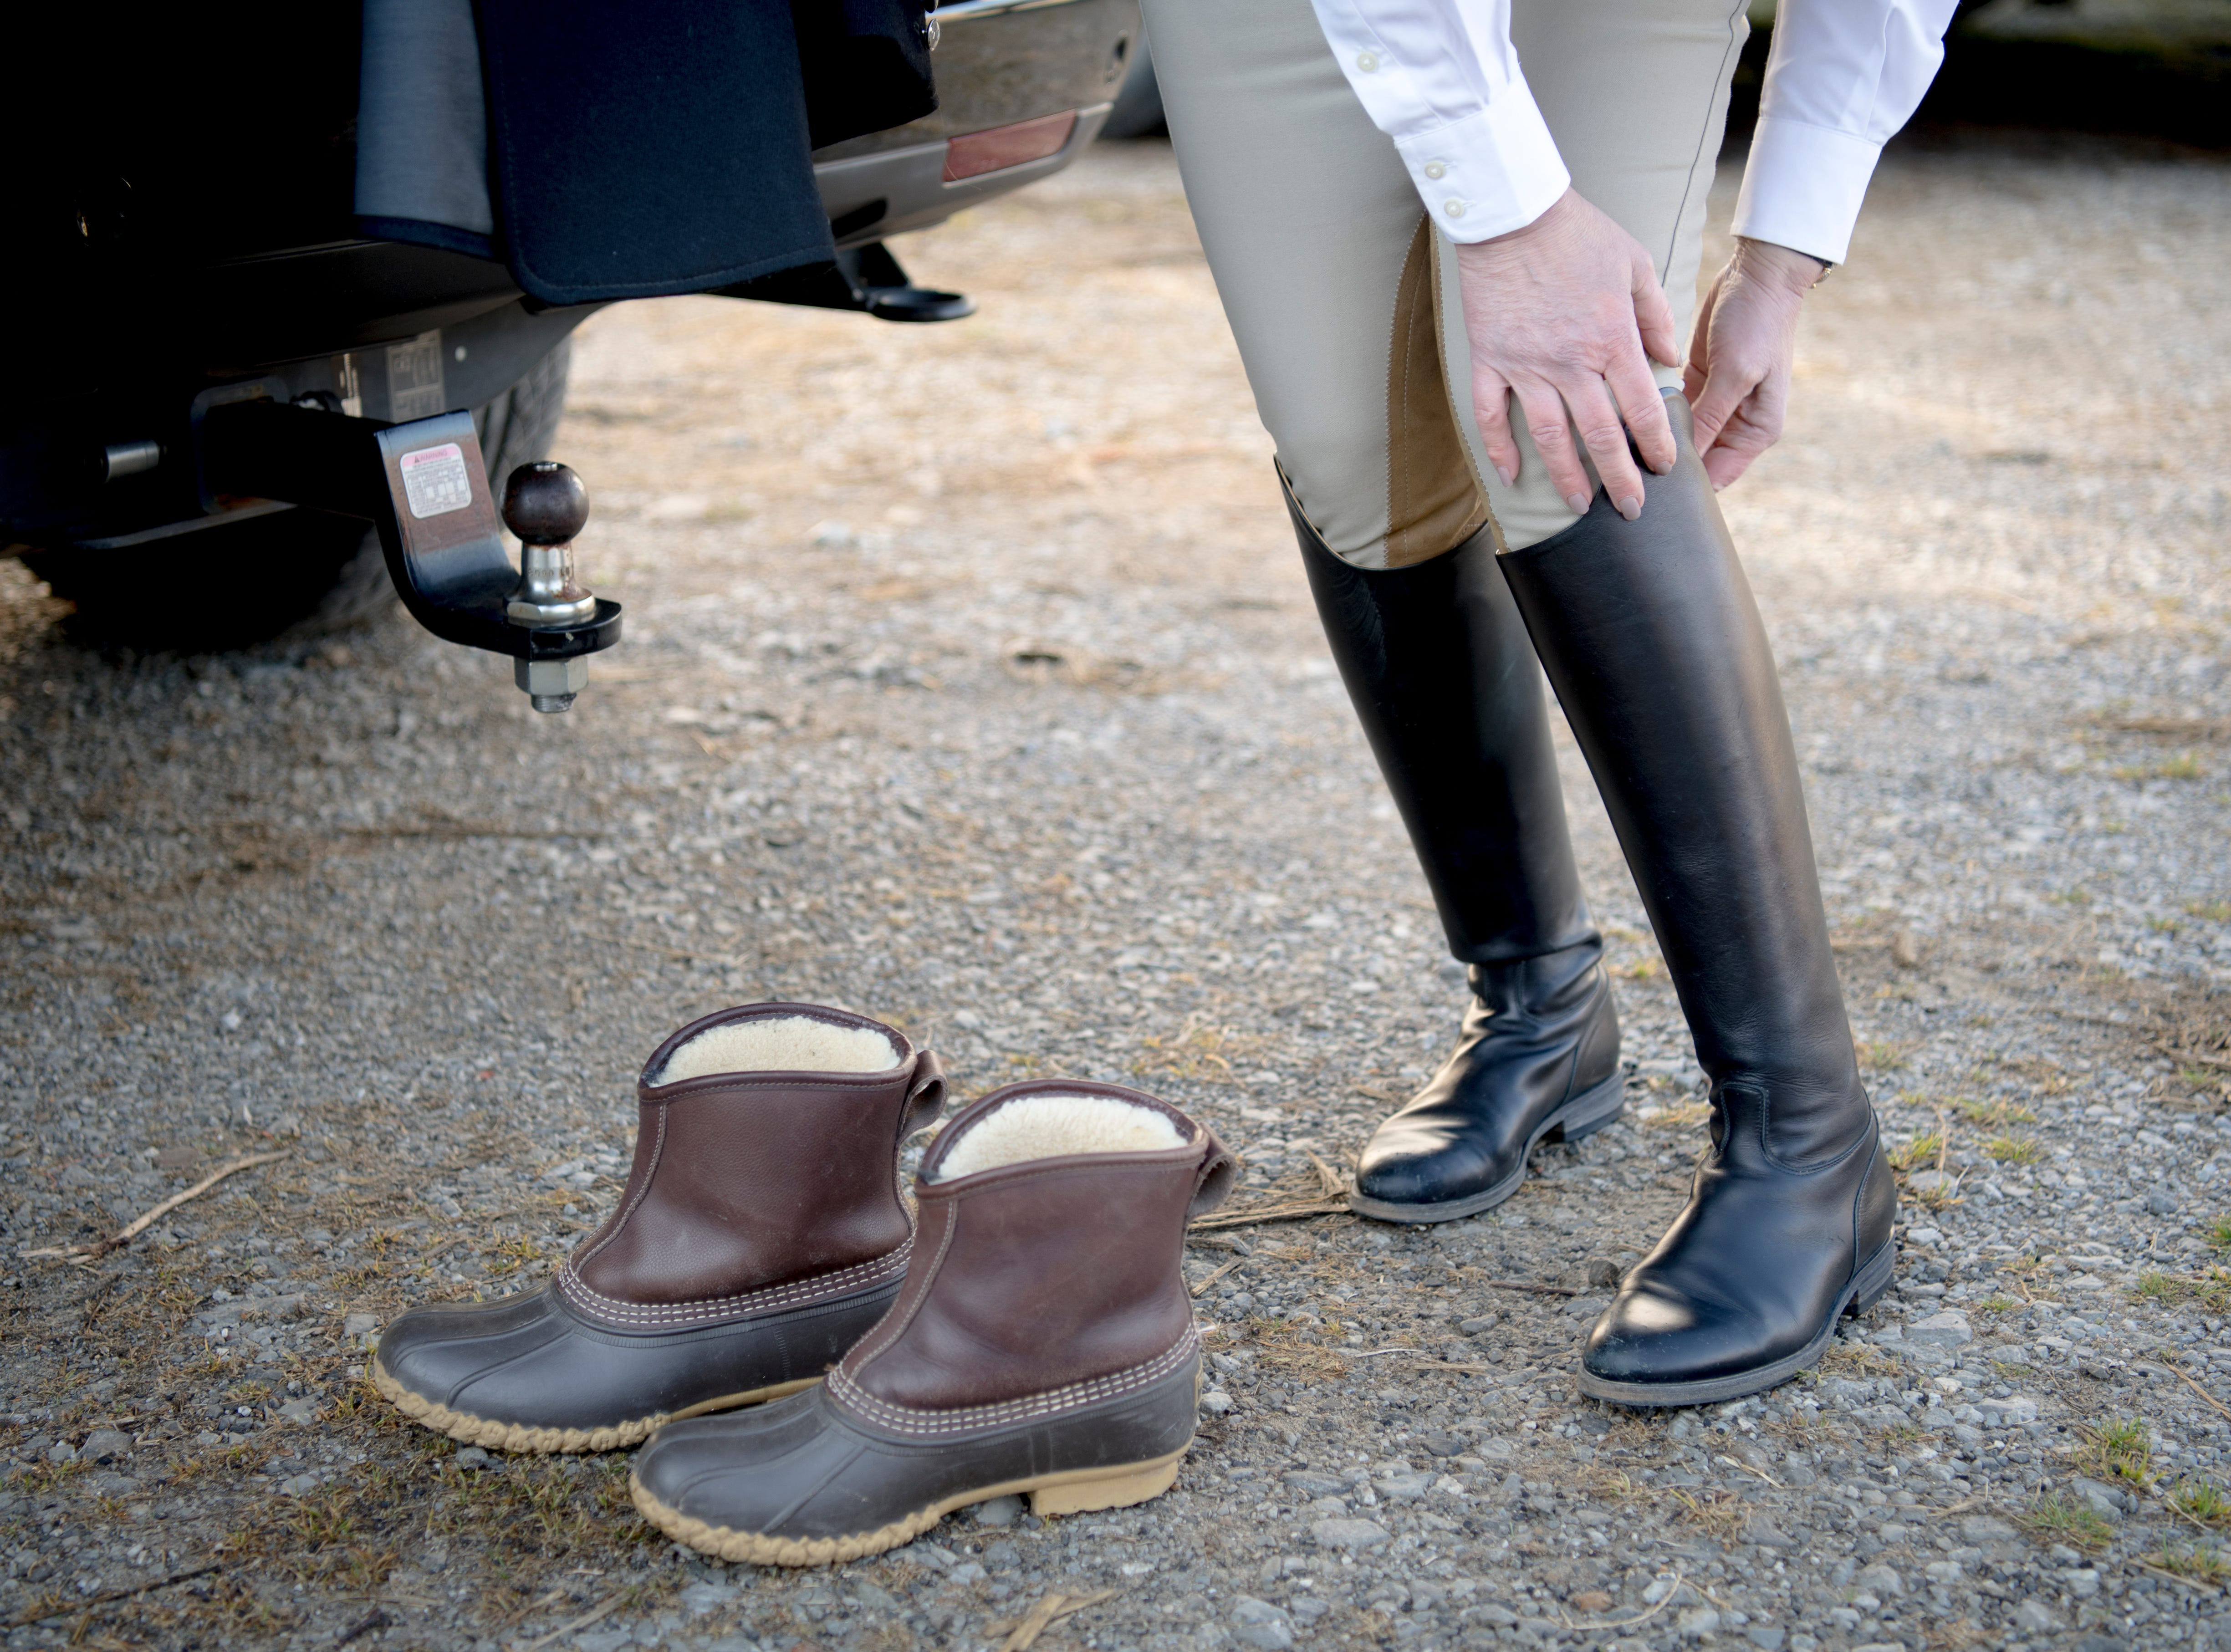 A rider puts on tall leather riding boots, which offer leg protection for horseback riders, before a fixture at Riverplains Farm in Strawberry Plains, Tennessee on Wednesday, March 27, 2019.